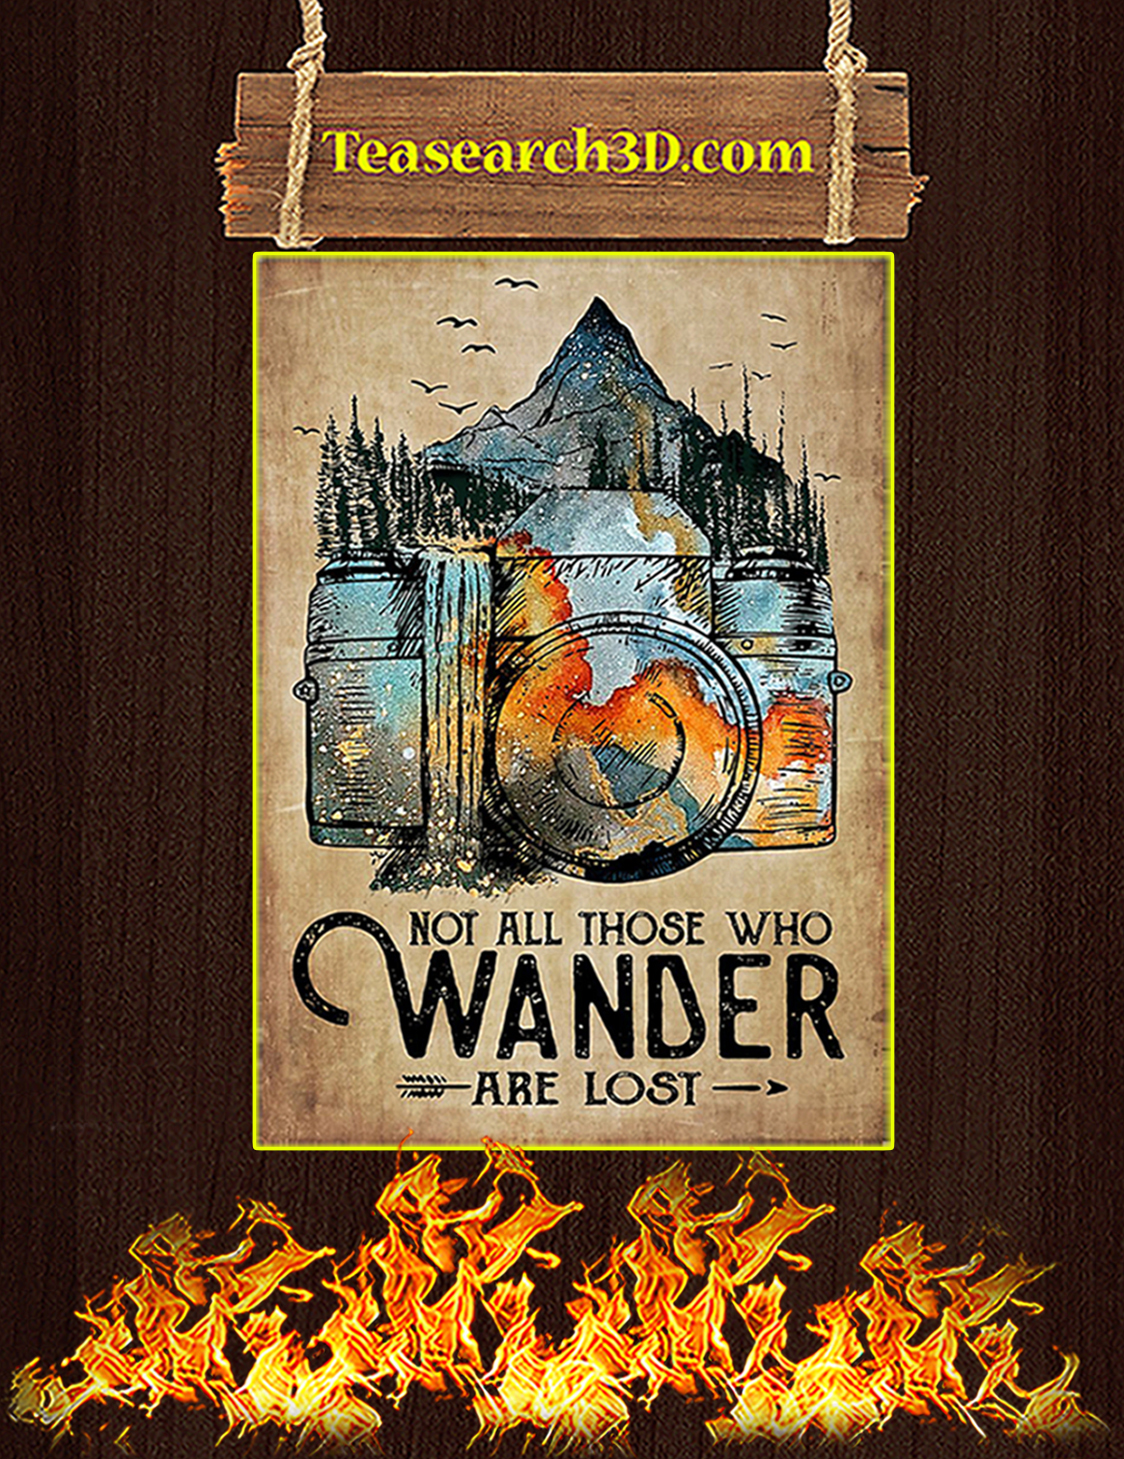 Photographer not all those who wander are lost poster A3